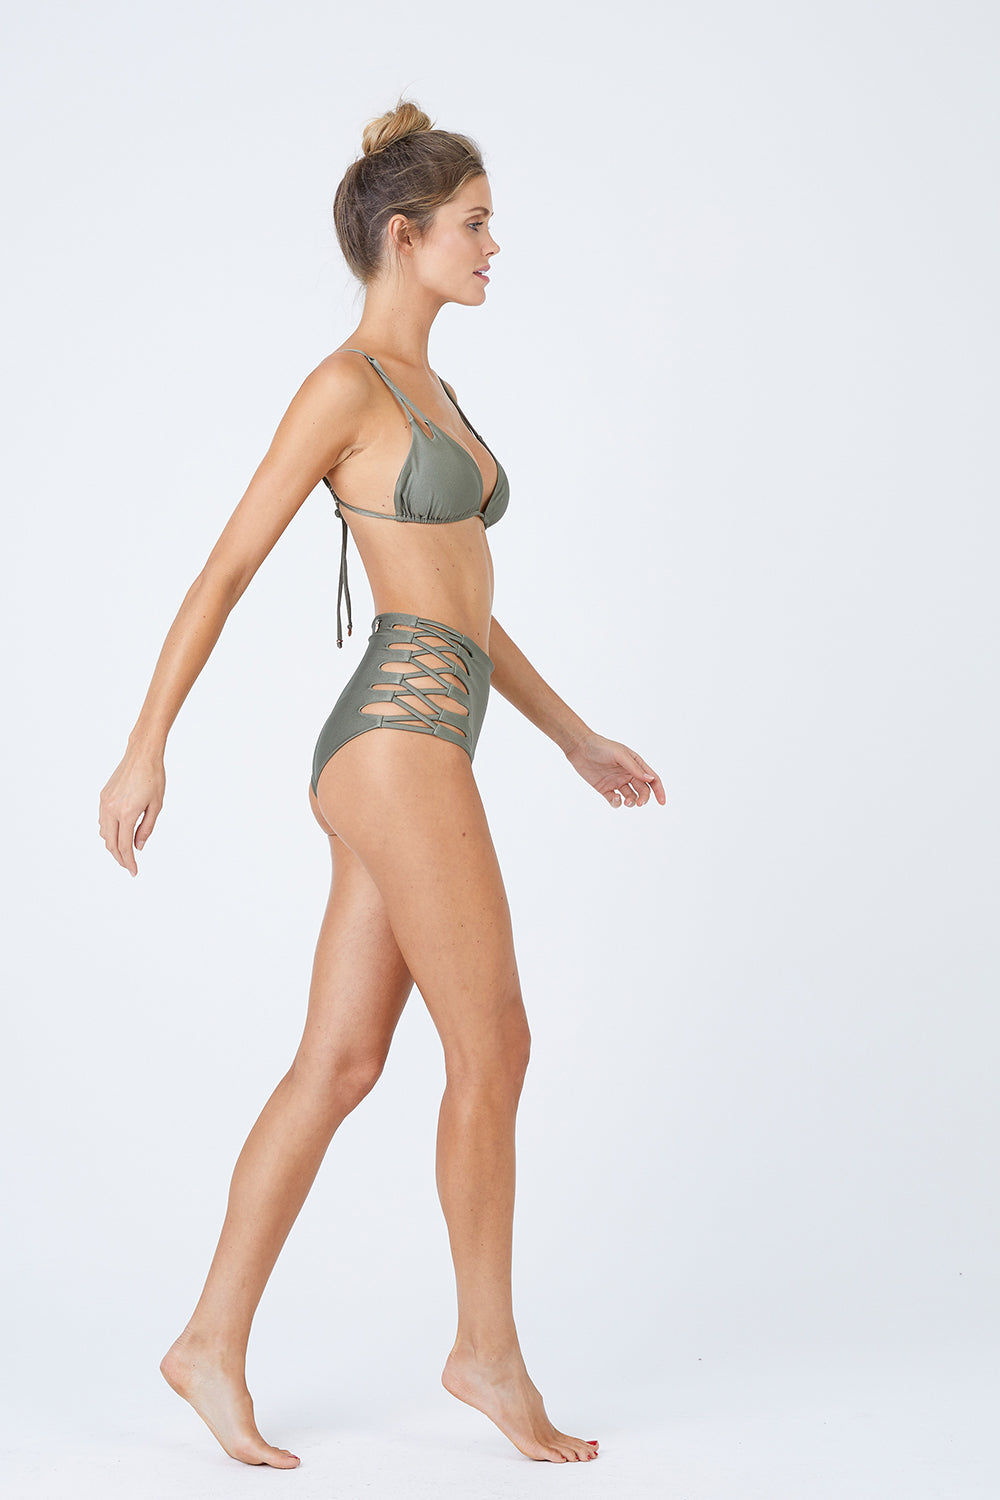 MALAI Lace Up High Waist Bikini Bottom - Sparkly Green Bikini Bottom | Sparkly Green| Malai Malai Lace Up High Waist Bikini Bottom - Sparkly Green Retro style high-waisted bikini bottom in shiny autumn green color. Intricate corset-inspired criss-cross strap detail at sides adds a sexy touch Side View